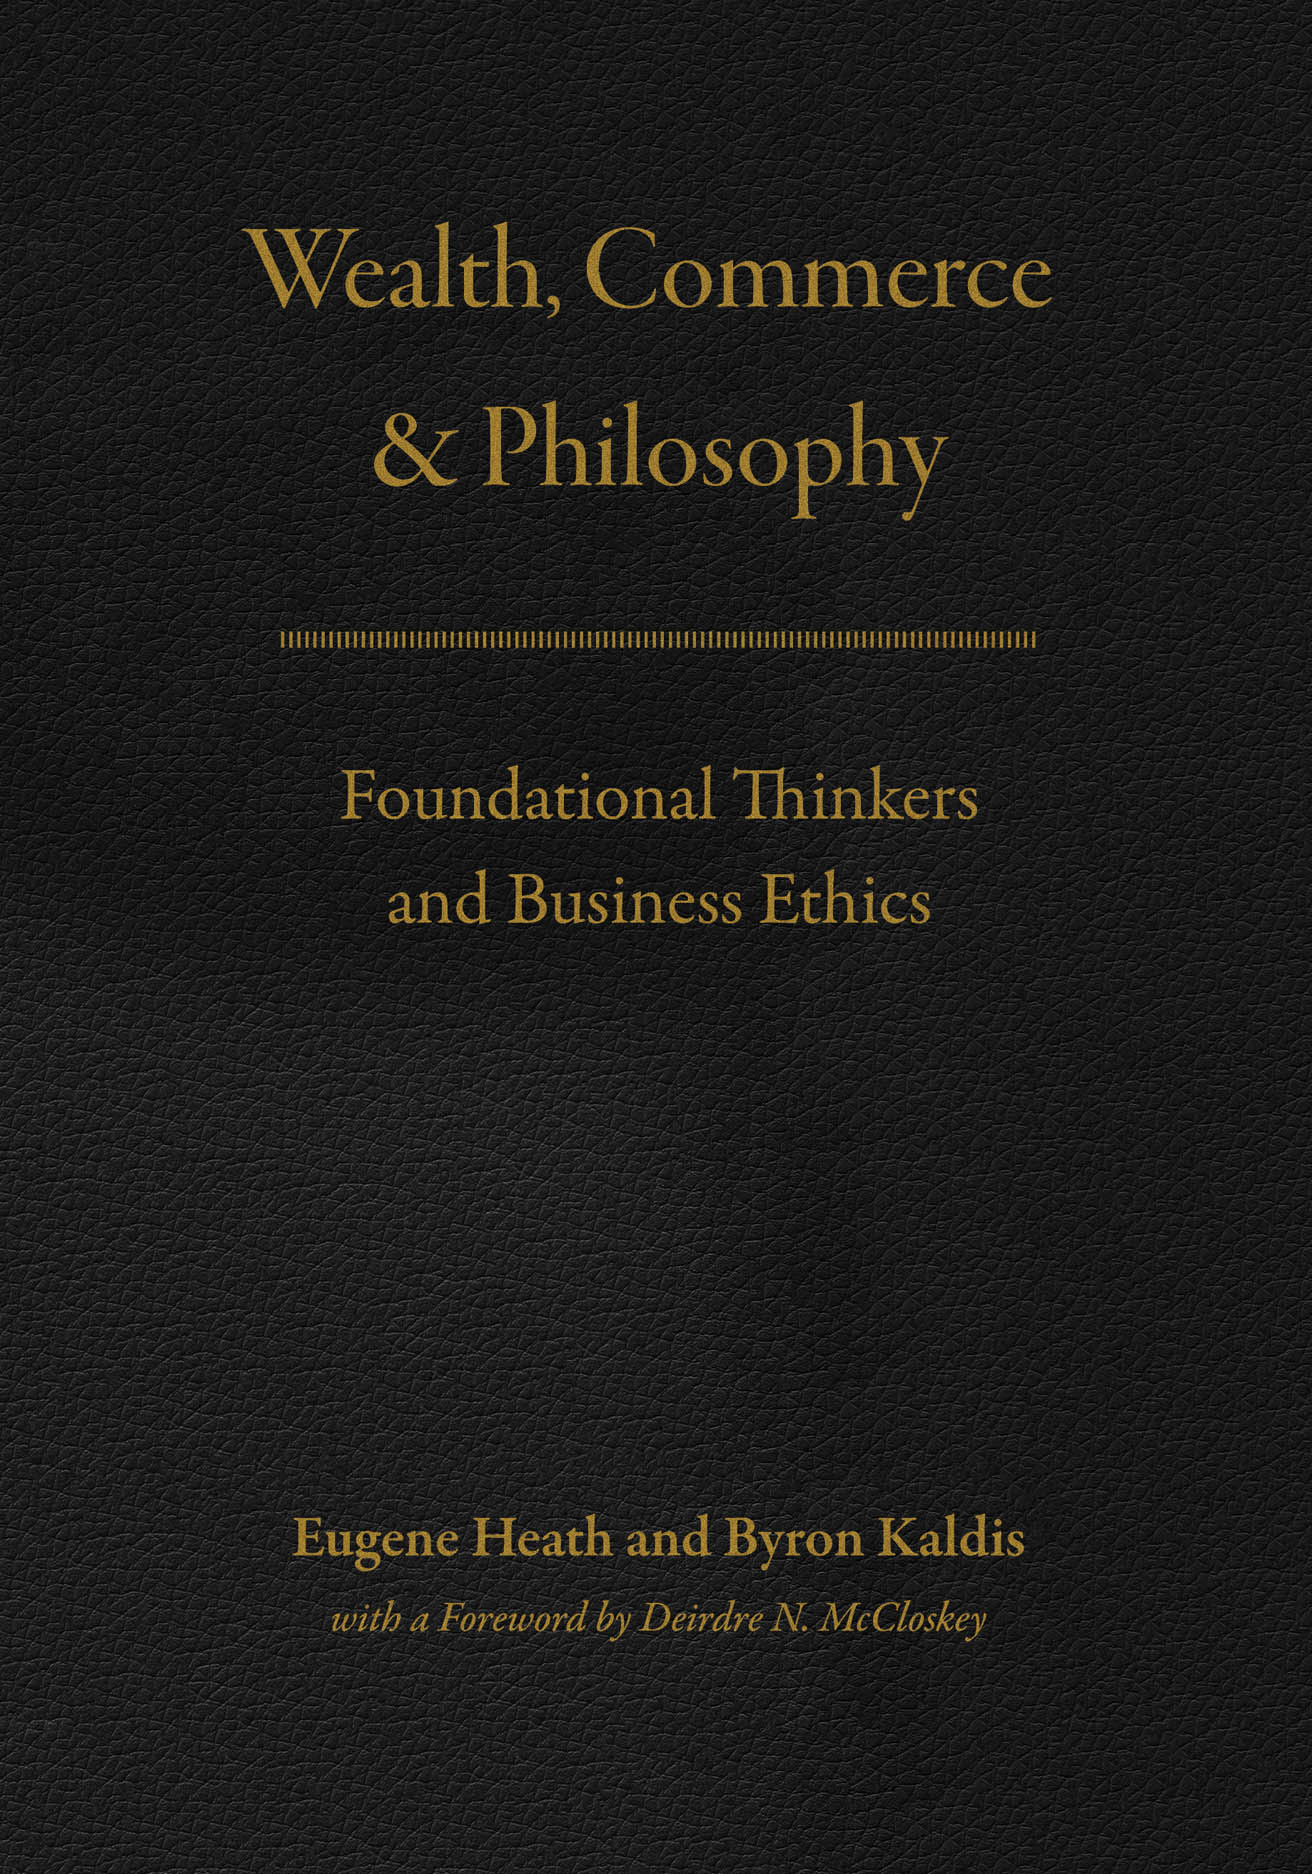 Wealth, Commerce, and Philosophy: Foundational Thinkers and Business Ethics